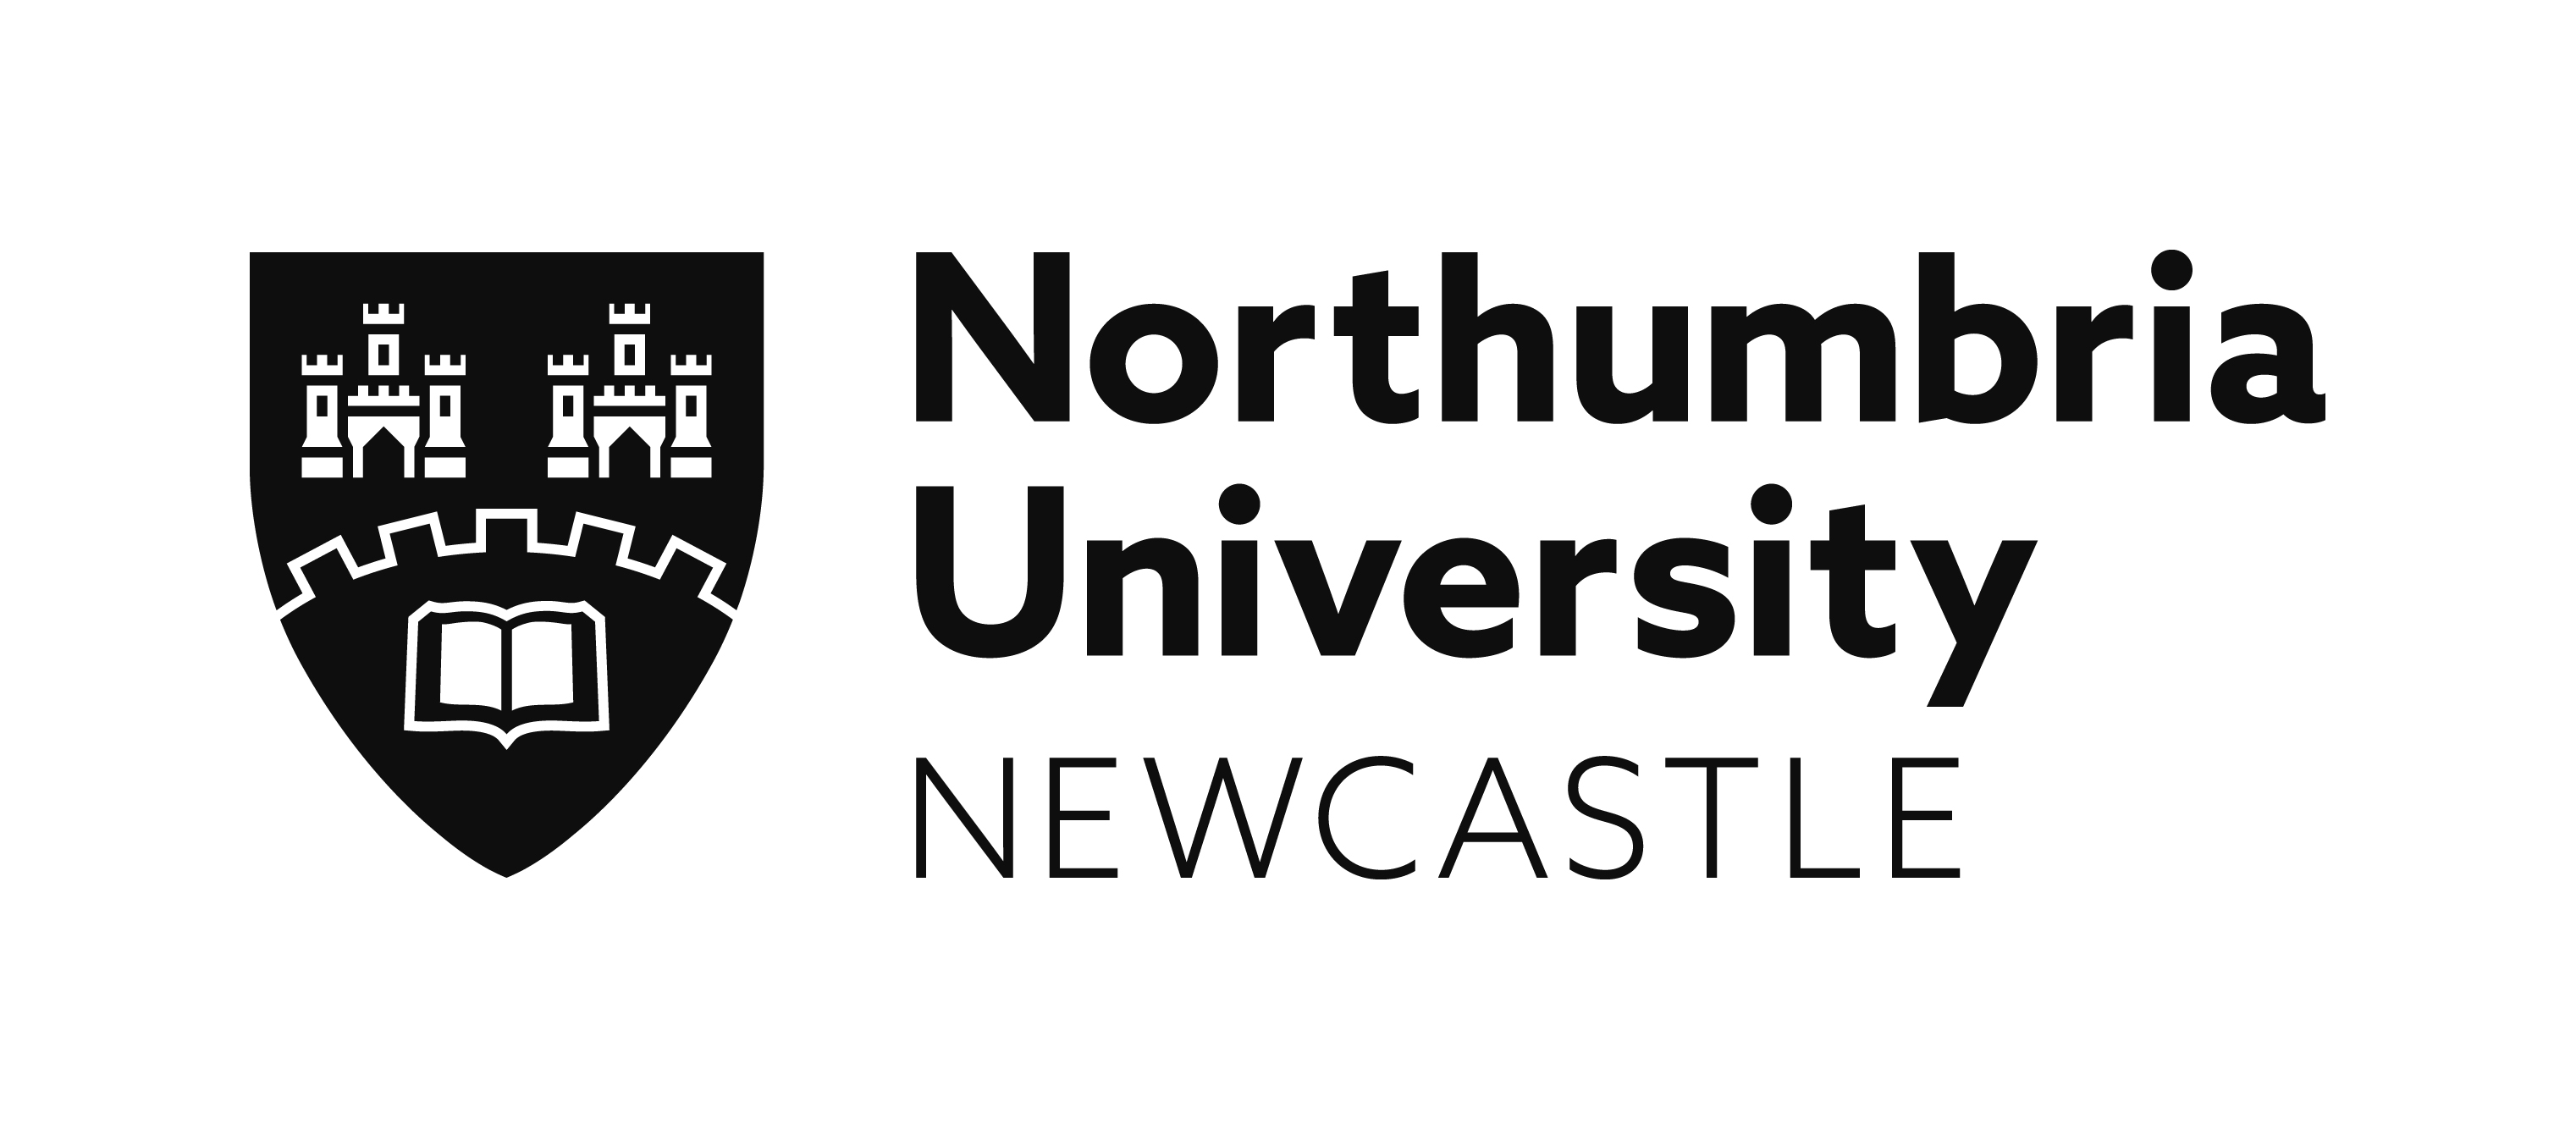 Northumbria University and Newcastle Business School Logo